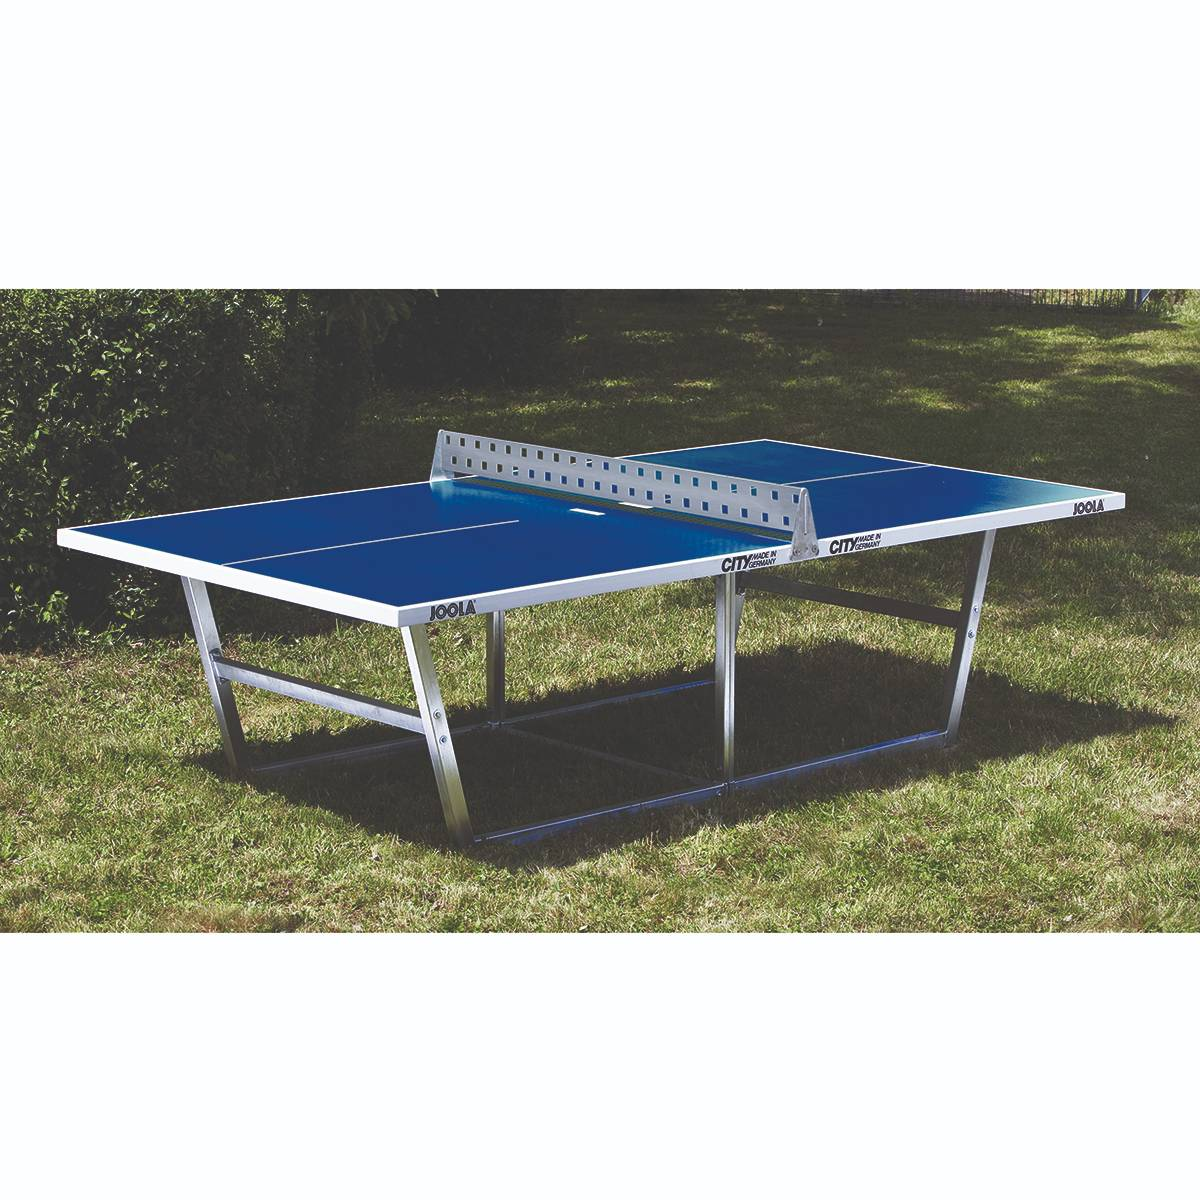 The Joola City Outdoor Table Tennis Table Is An Extremely Sturdy Outdoor Table  Tennis Table That Is Ideal For Public Areas, School Playgrounds, ...